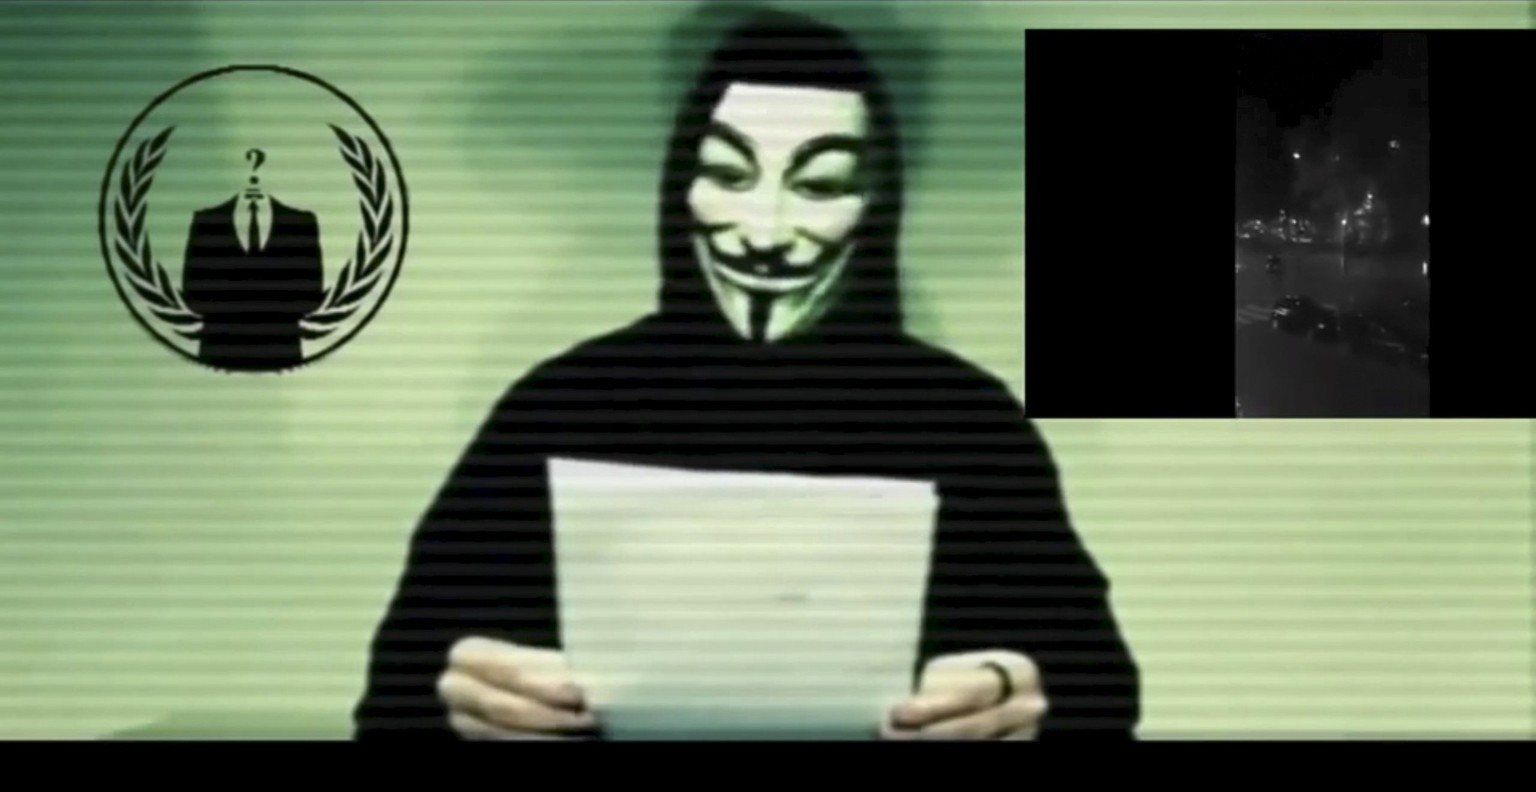 A man wearing a mask associated with Anonymous makes a statement in this still image from a video released on social media on November 16, 2015. Anonymous, the loose-knit network of activist hackers known for cyber attacks on government, corporate and religious websites, is preparing to unleash waves of cyberattacks on Islamic State following the attacks in Paris last week that killed 129 people, self-described members said in a video posted online.  REUTERS/Social Media Website via Reuters TV ATTENTION EDITORS - THIS PICTURE WAS PROVIDED BY A THIRD PARTY. REUTERS IS UNABLE TO INDEPENDENTLY VERIFY THE AUTHENTICITY, CONTENT, LOCATION OR DATE OF THIS IMAGE. FOR EDITORIAL USE ONLY. NOT FOR SALE FOR MARKETING OR ADVERTISING CAMPAIGNS. NO RESALES. NO ARCHIVE. THIS PICTURE IS DISTRIBUTED EXACTLY AS RECEIVED BY REUTERS, AS A SERVICE TO CLIENTS.